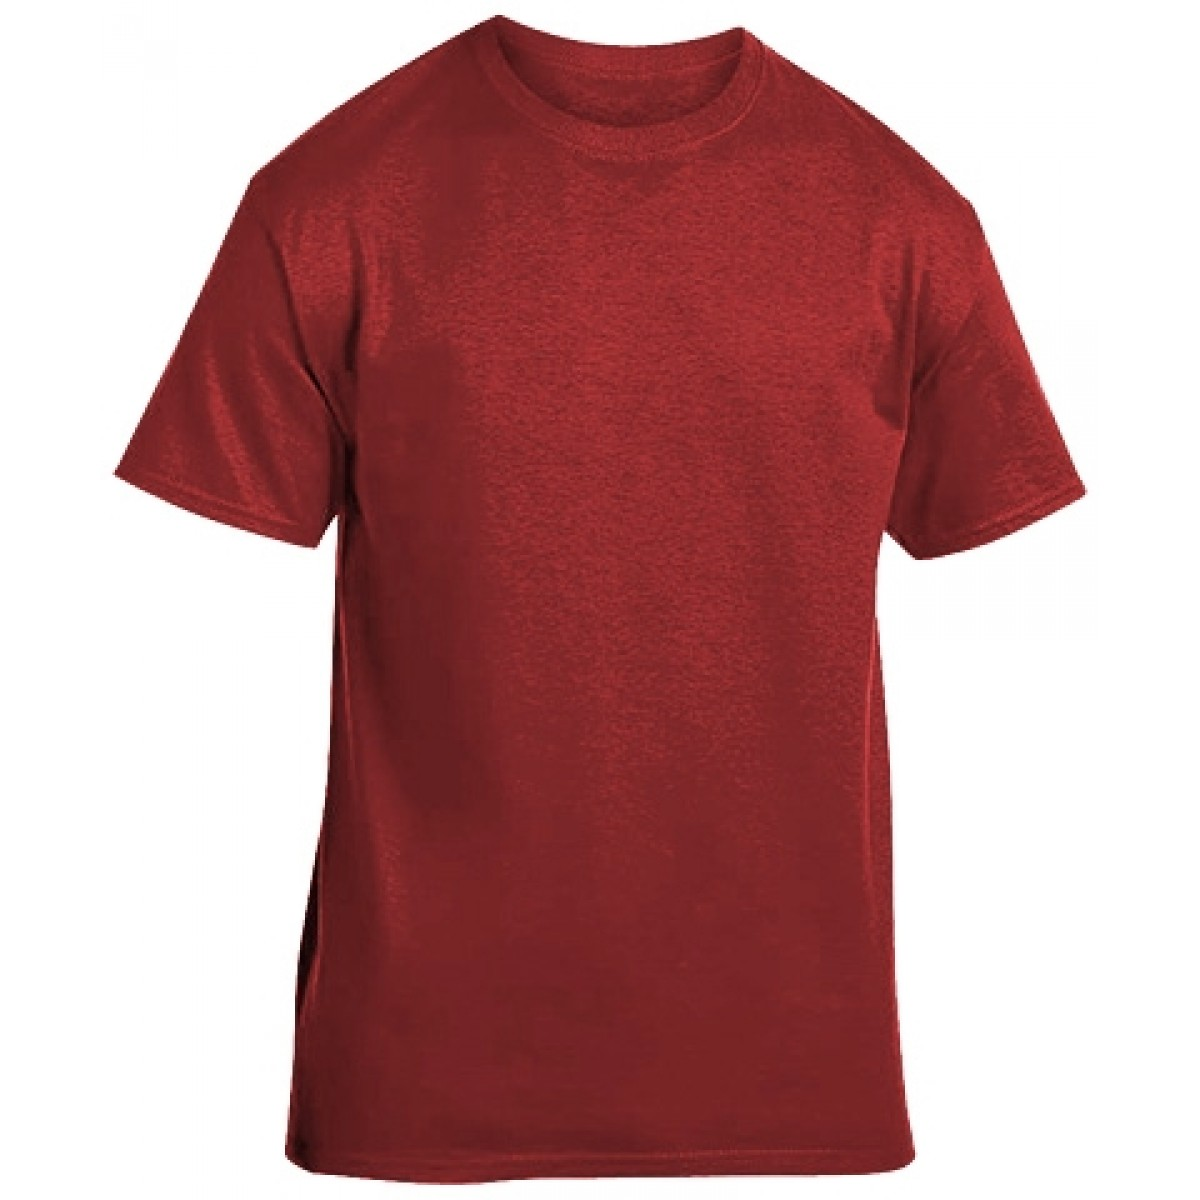 Soft 100% Cotton T-Shirt-Heathered Red-2XL